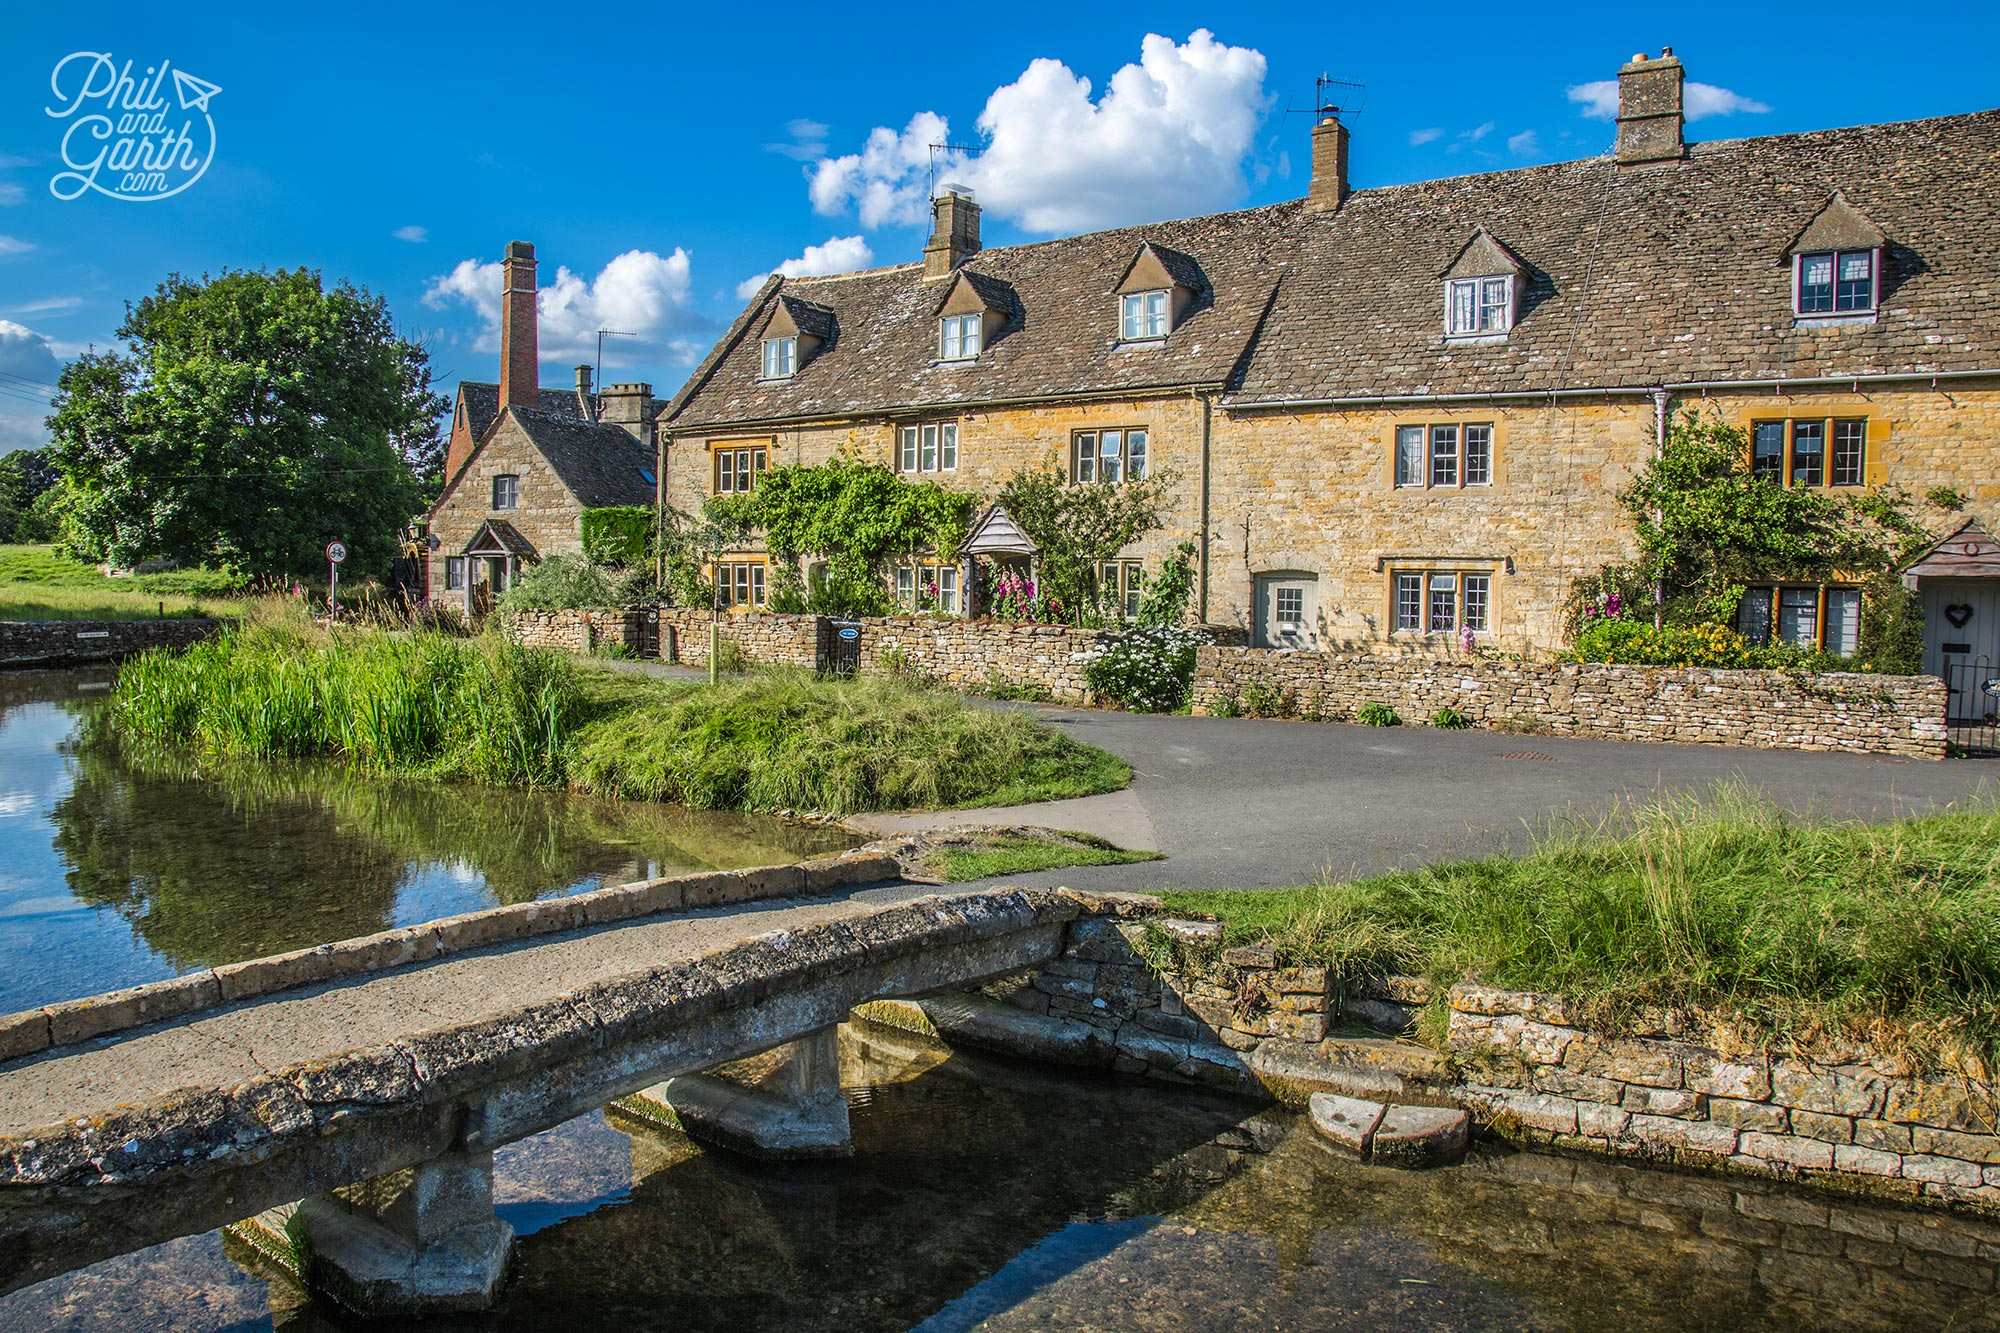 The quaint cottages of Lower Slaughter